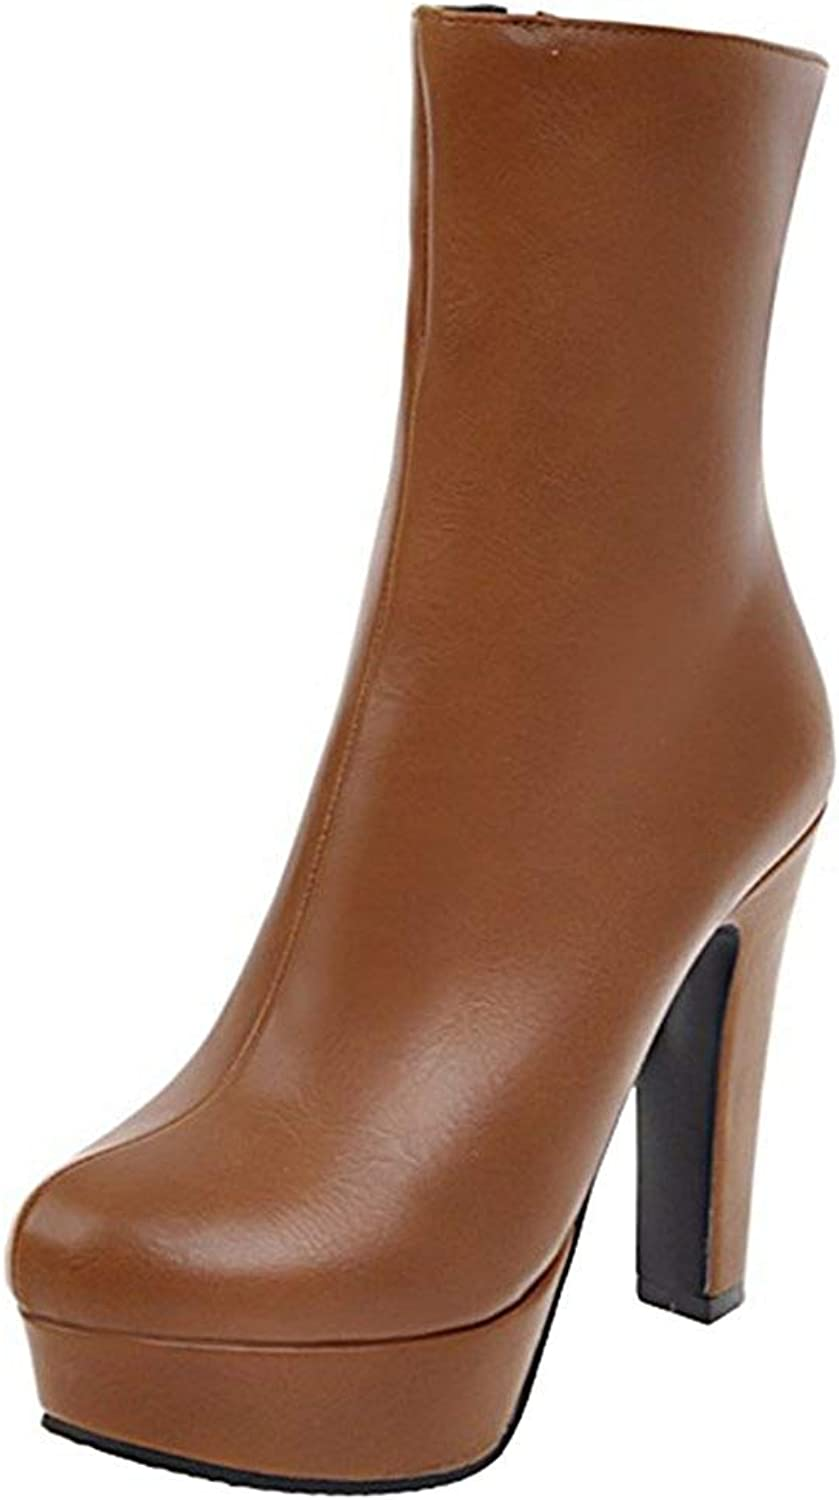 Ghssheh Women's Trendy Splicing Chunky High Heel Platform Ankle Booties Round Toe Side Zipper Short Boots Brown 6.5 M US